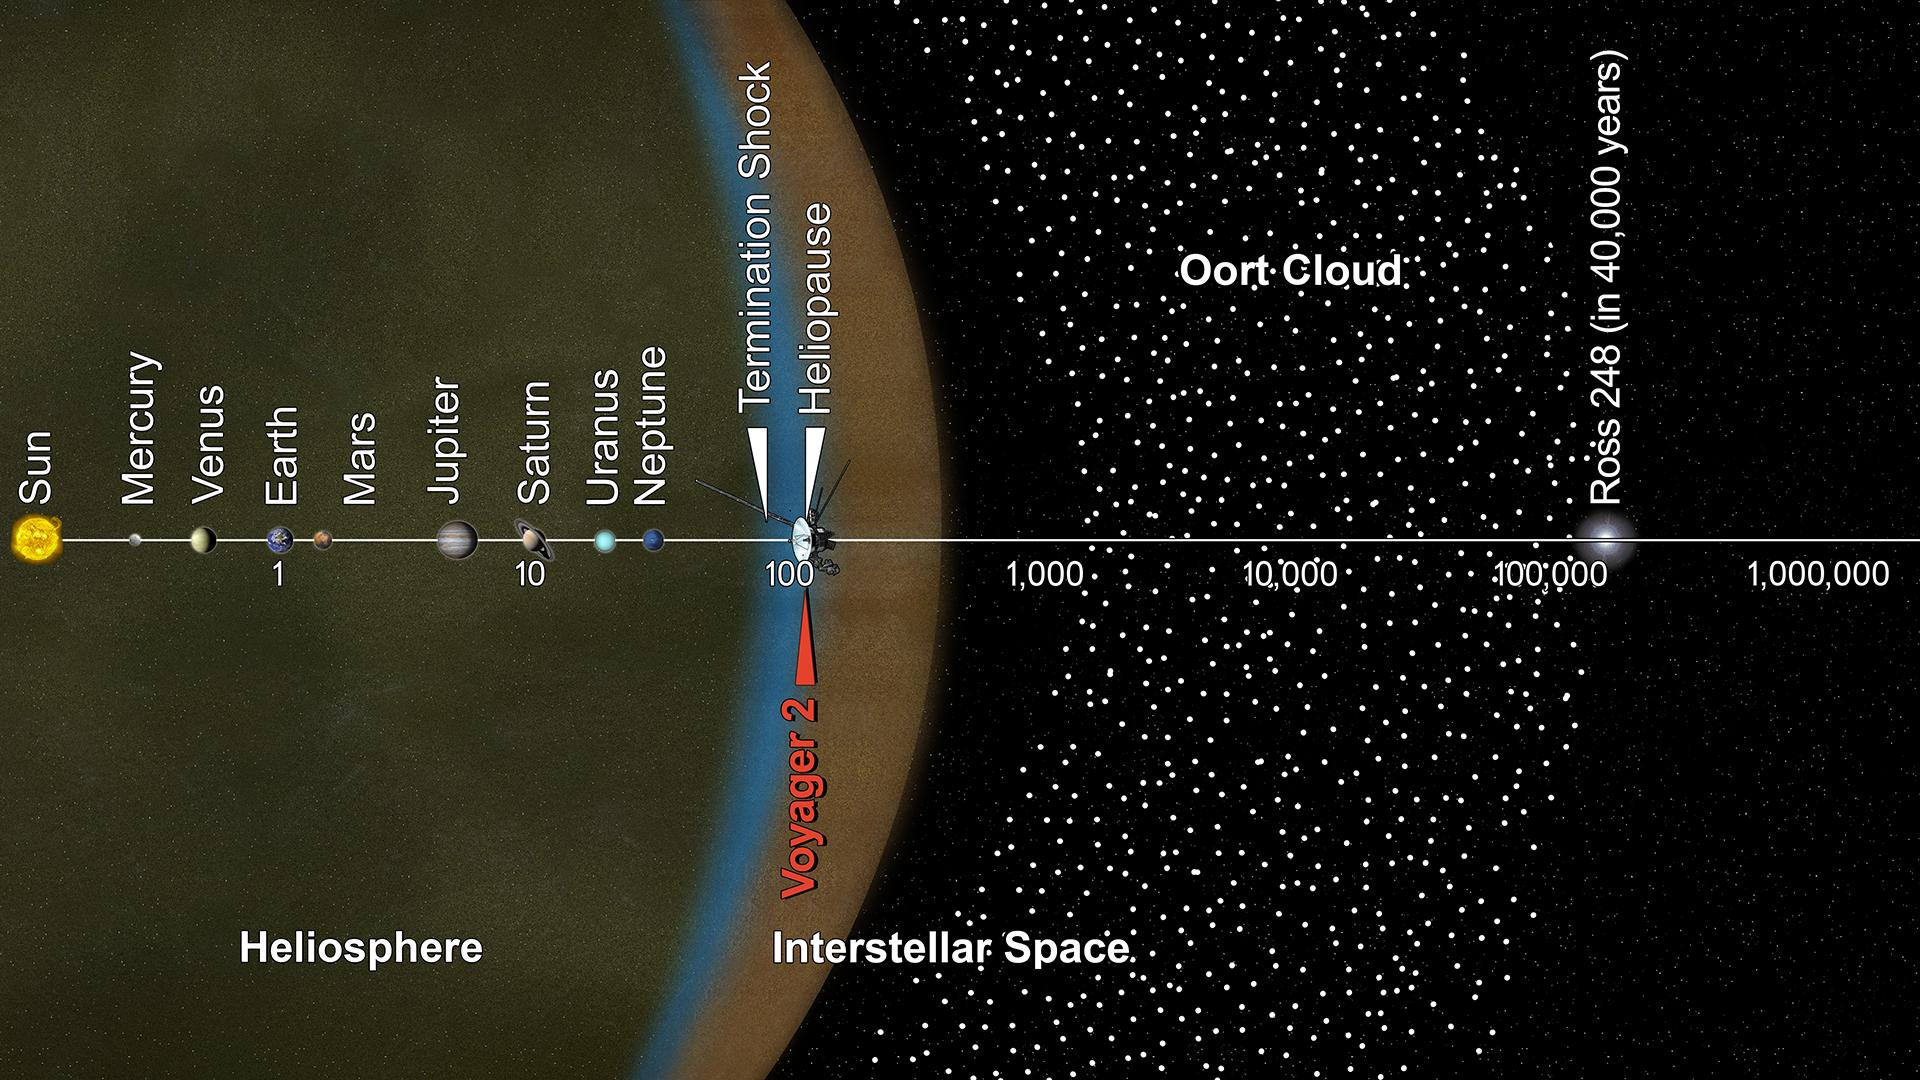 Space Images | Voyager 2 and the Scale of the Solar System (Artist Concept)